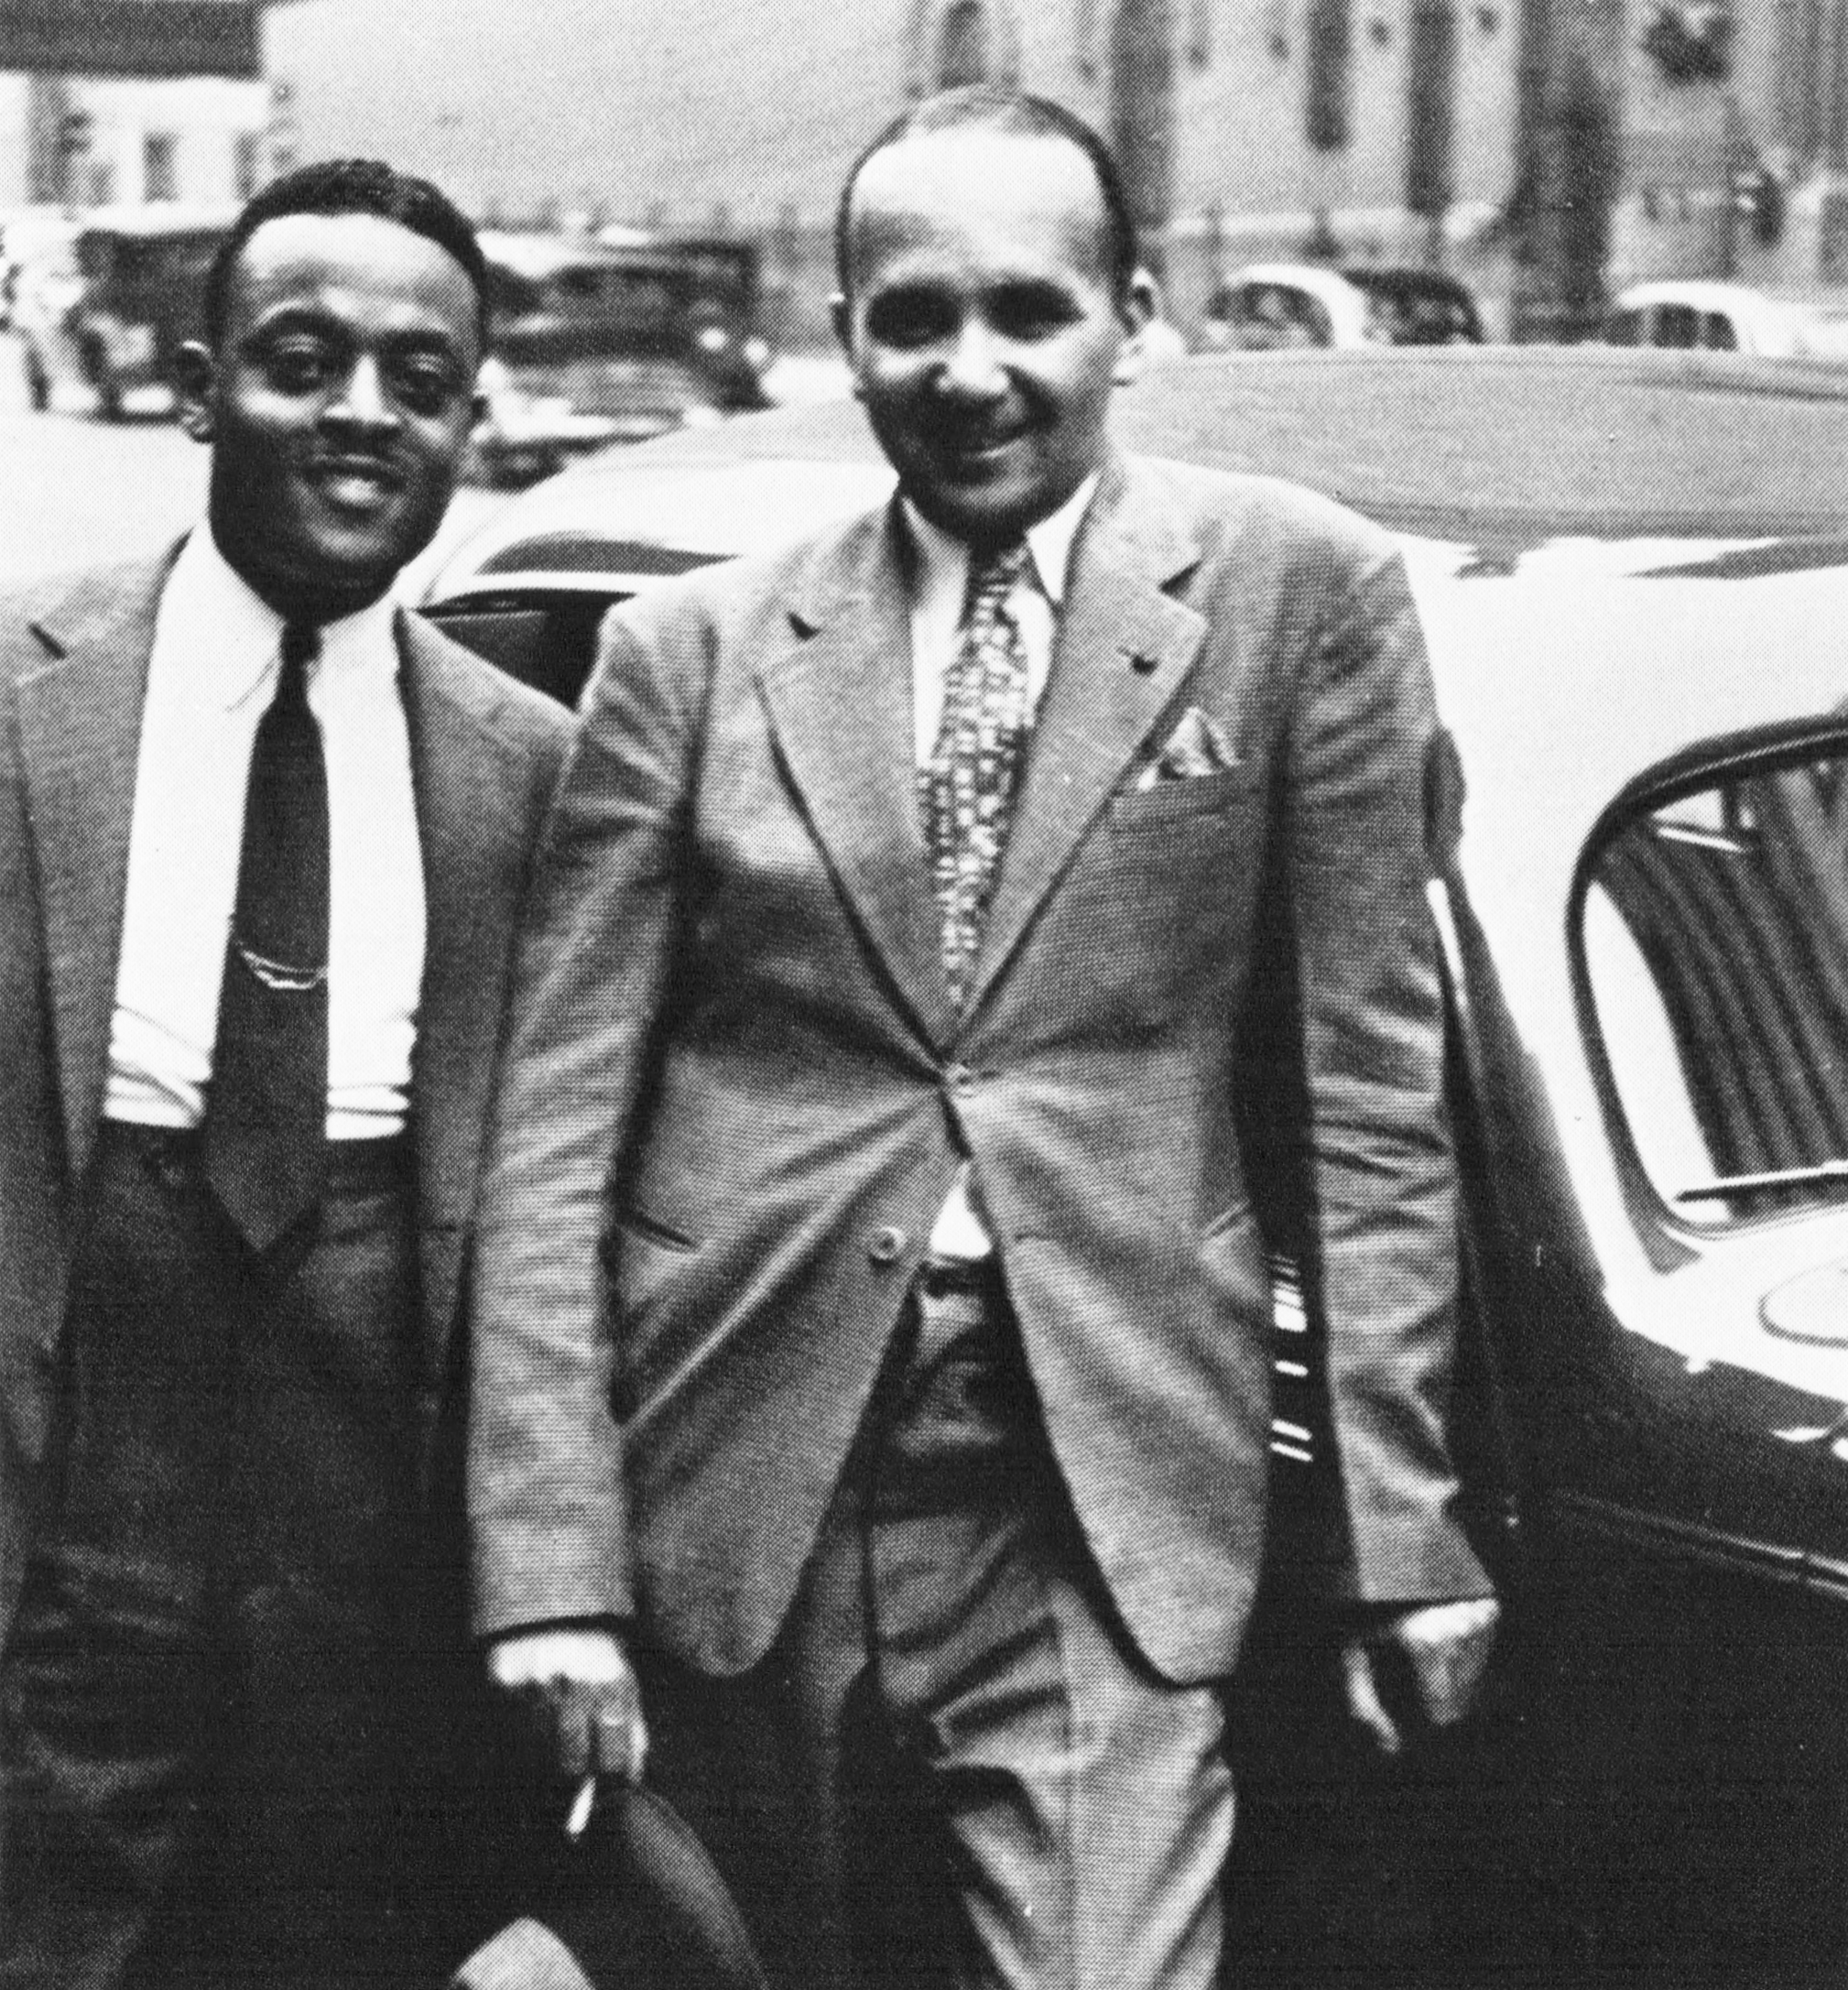 Ben Webster and Fletcher Henderson - mid 1930s.